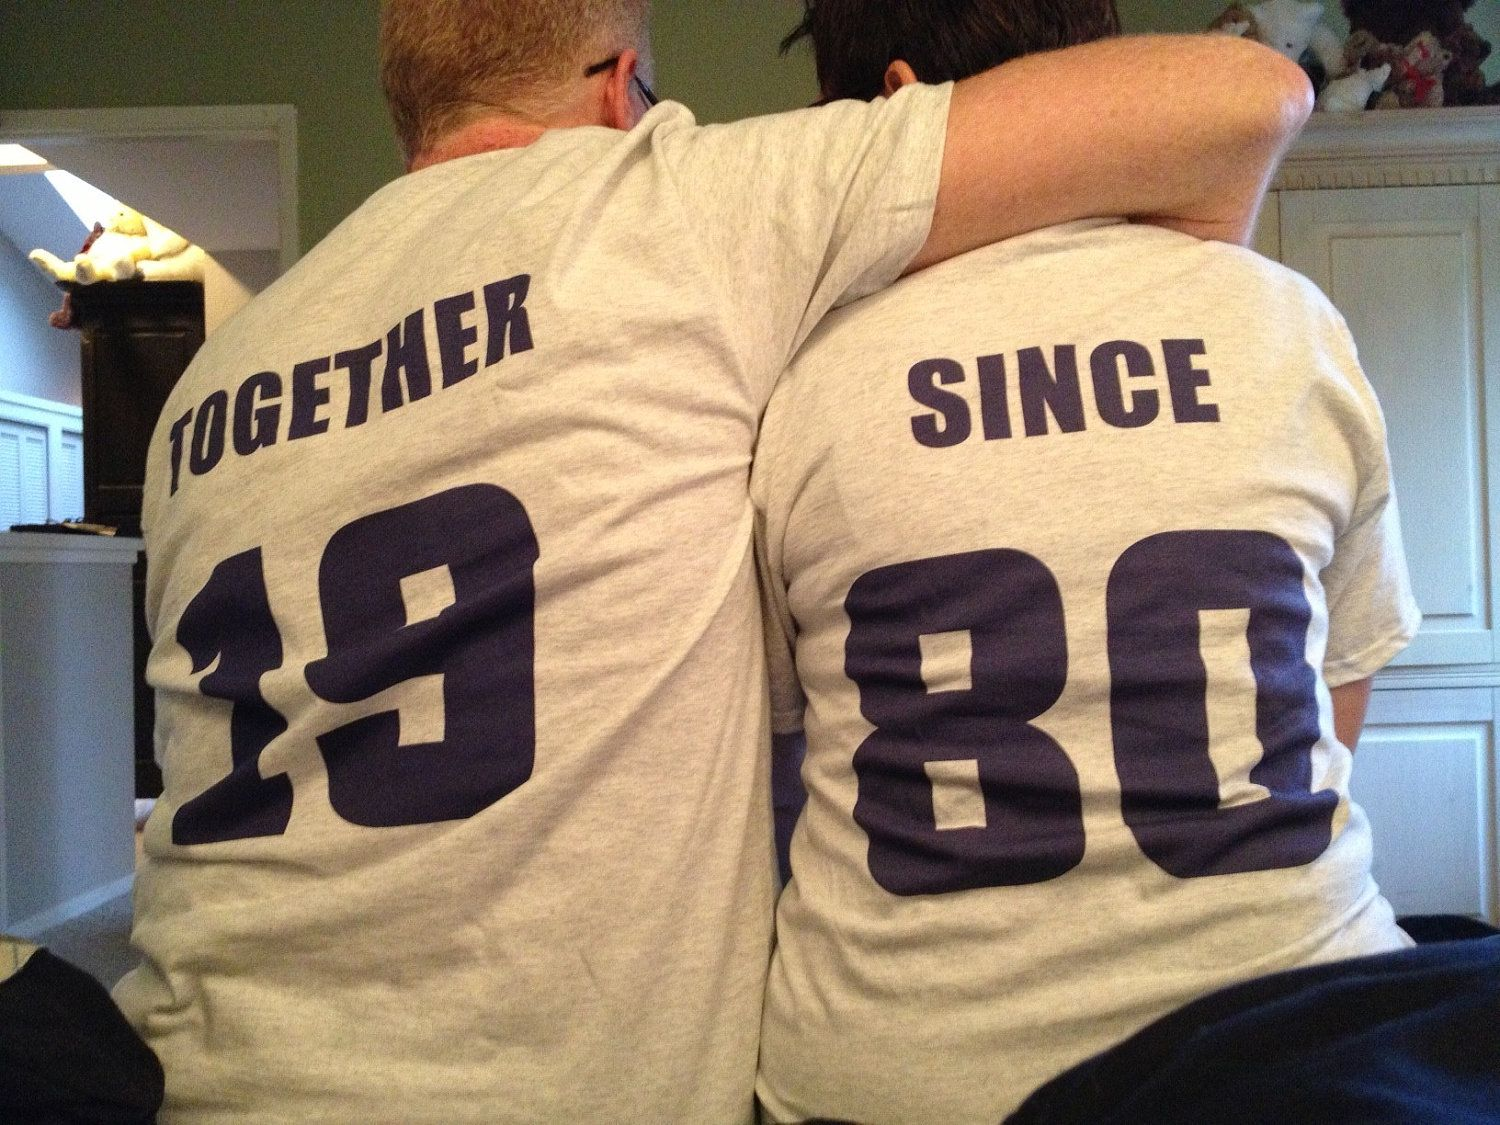 Wedding T Shirt Ideas: TOGETHER SINCE Custom Couples T-Shirts, Anniversary